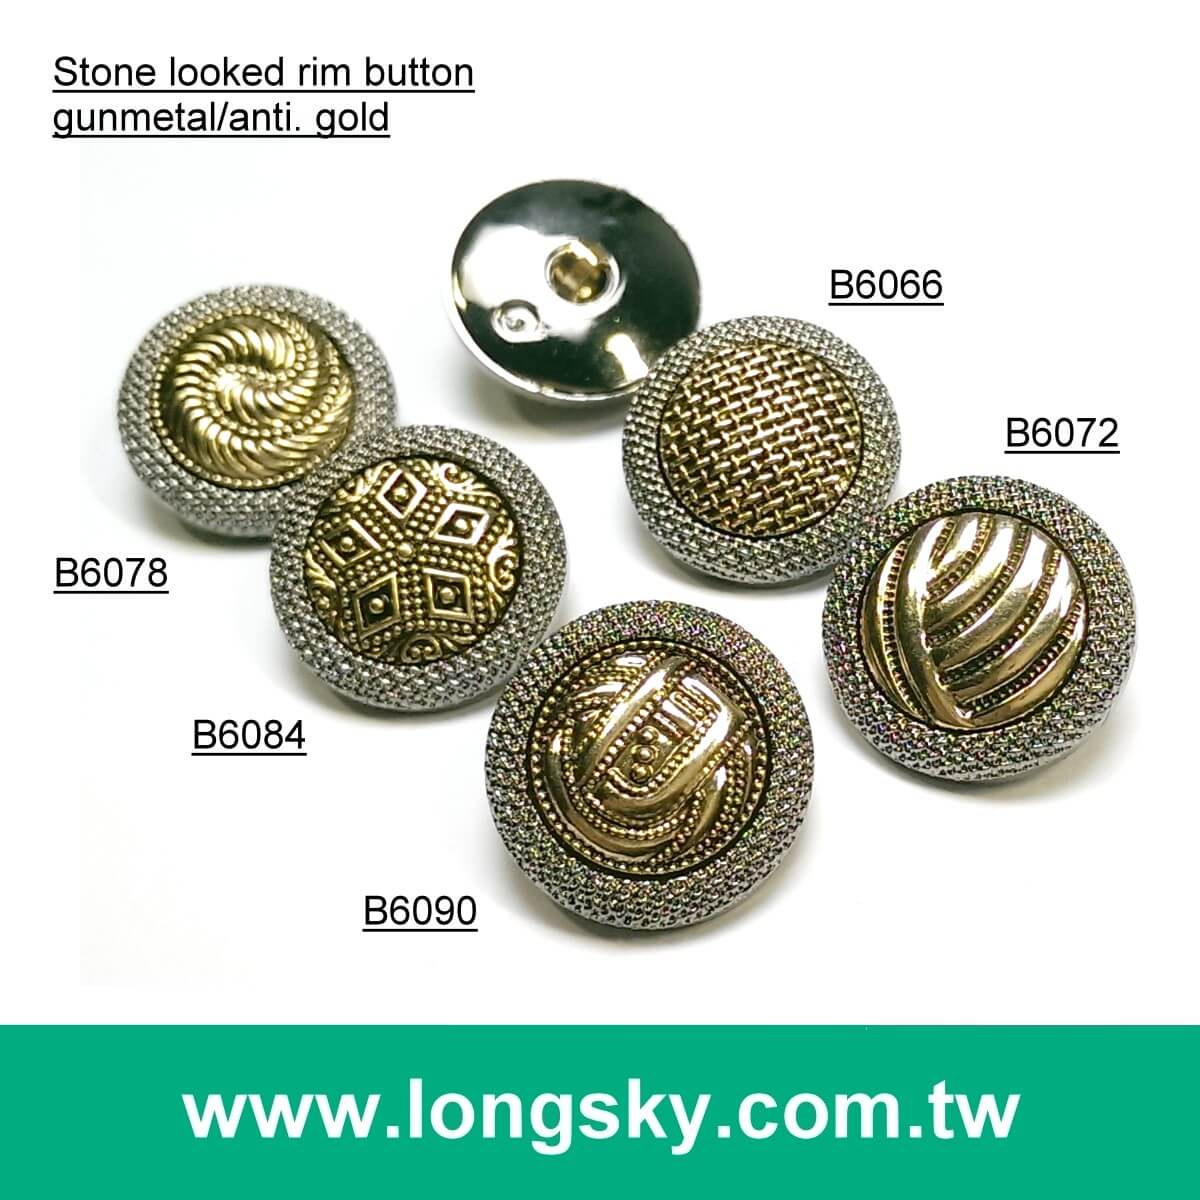 (#B6064/21mm) New 2 piece assembled metal looked button for fashion garment